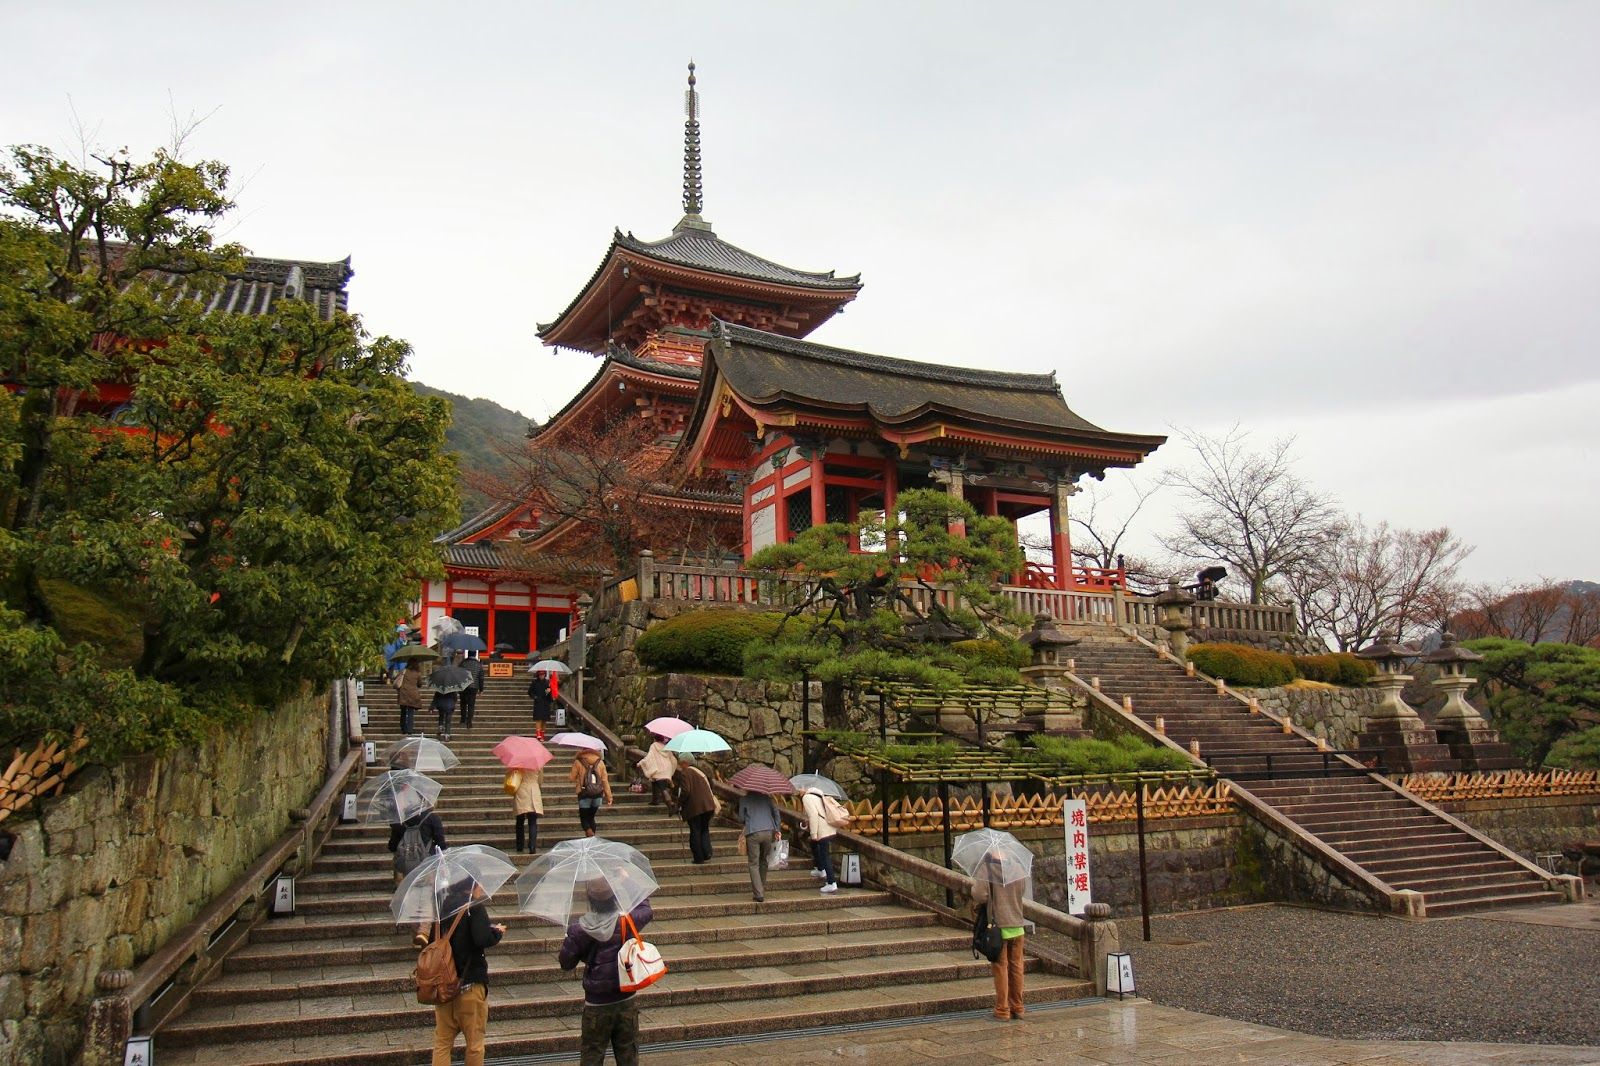 Where is FatBoy ?: Kyoto - Kiyomizu-dera, Temple of Clear Water.